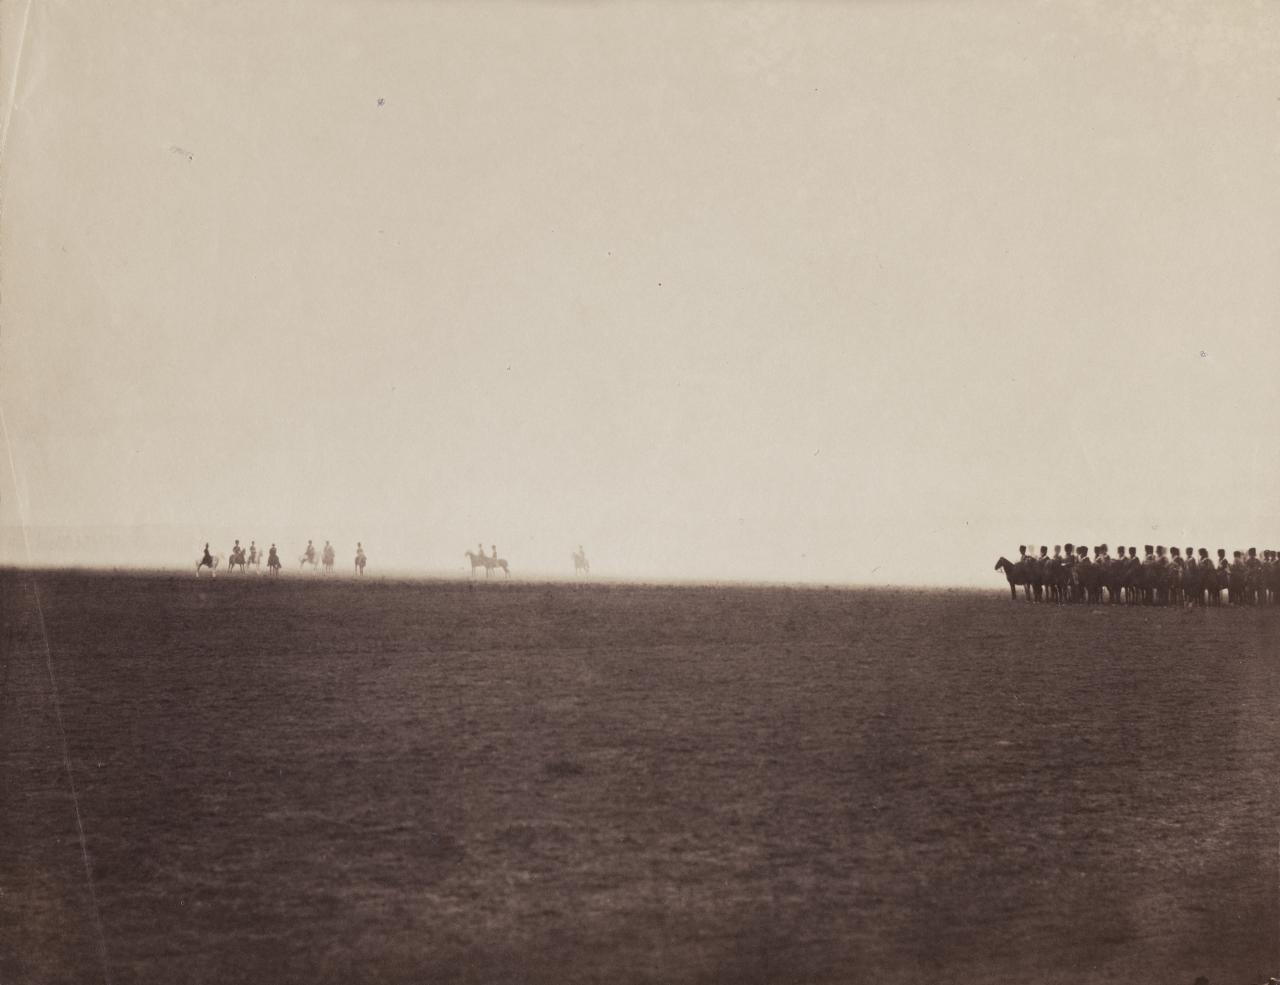 Gustave Le Gray, French (1820–1884).  Cavalry maneuvers, Camp de Châlons , 1857. Albumen print, 10 3/16 × 13 1/8 inches. The Nelson- Atkins Museum of Art, Kansas City, Missouri. Gift of the Hall Family Foundation, 2017.61.20.